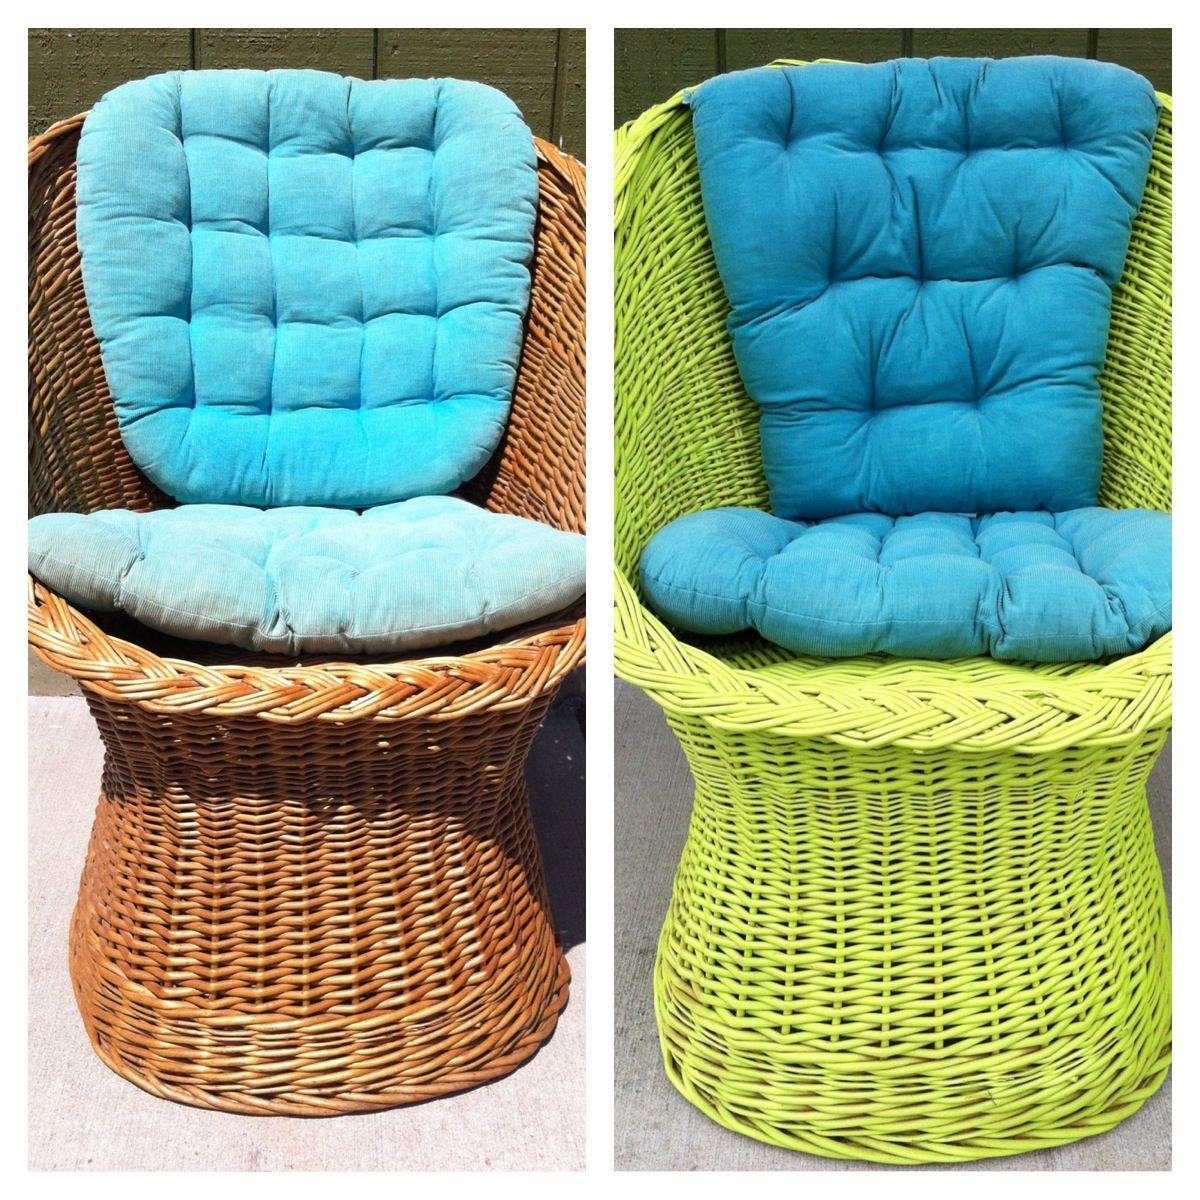 old wicker chair to new key lime green with teal pillows just spray